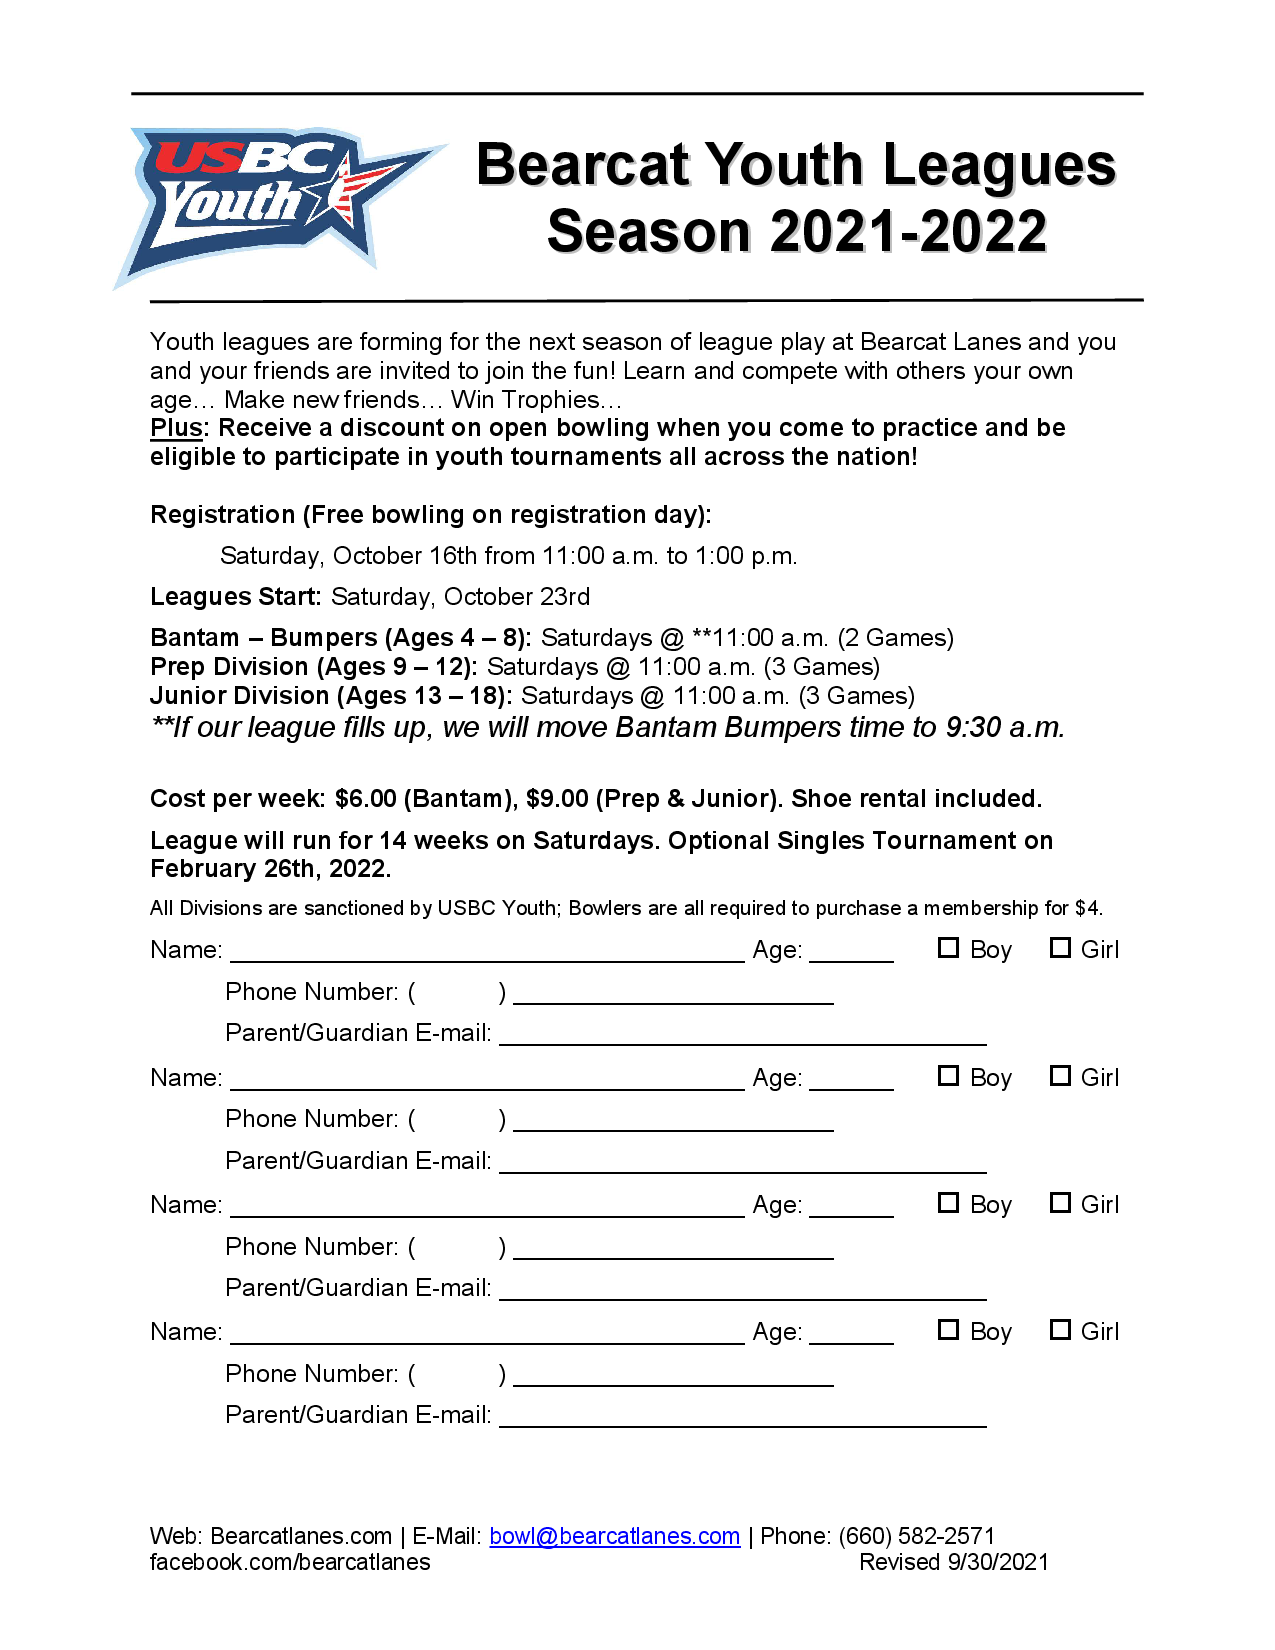 Youth League Registration Form